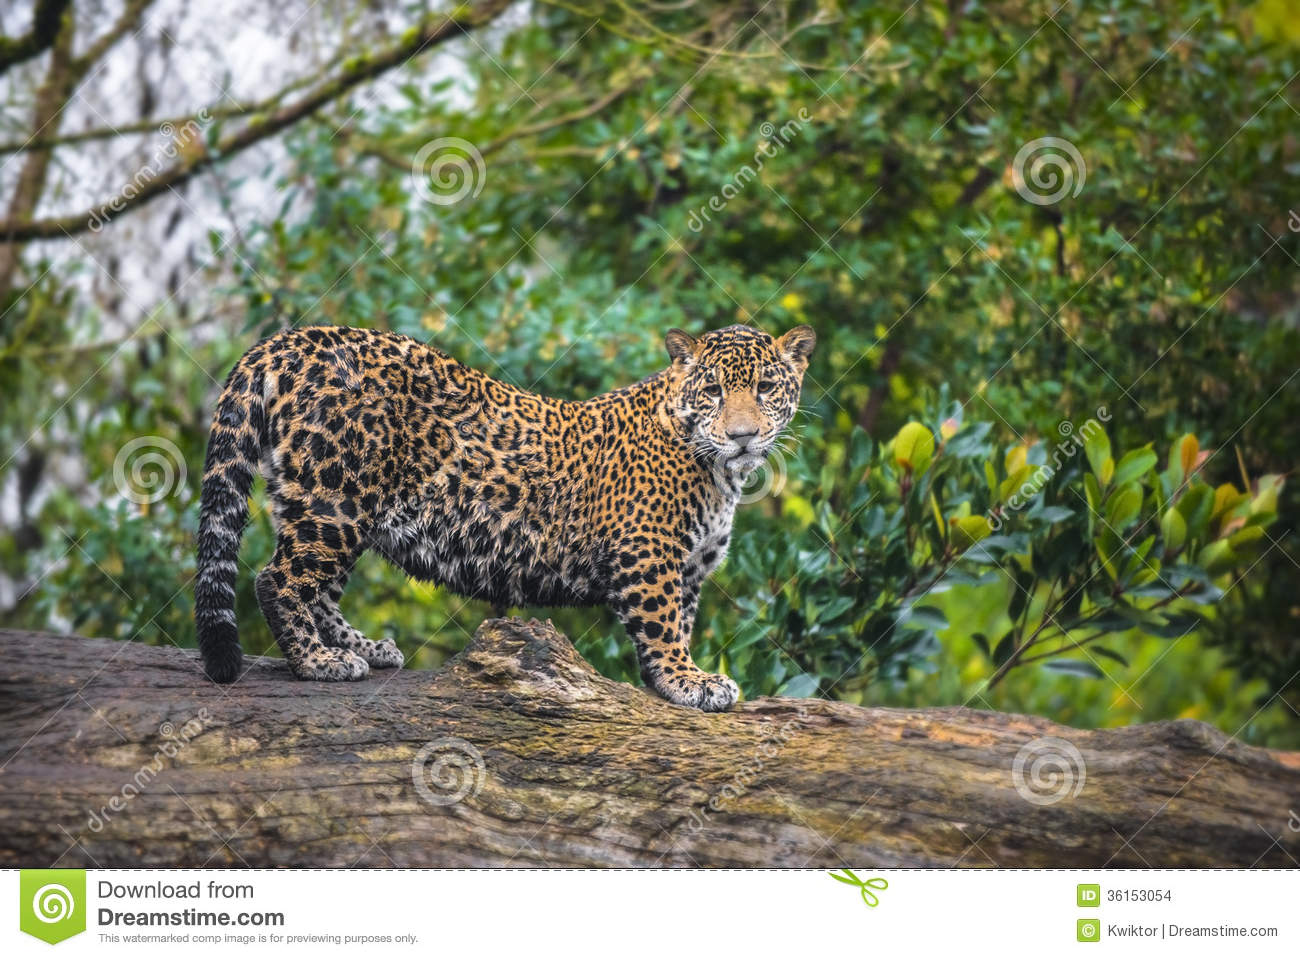 Jaguar In The Jungle Stock Images - Image: 36153054